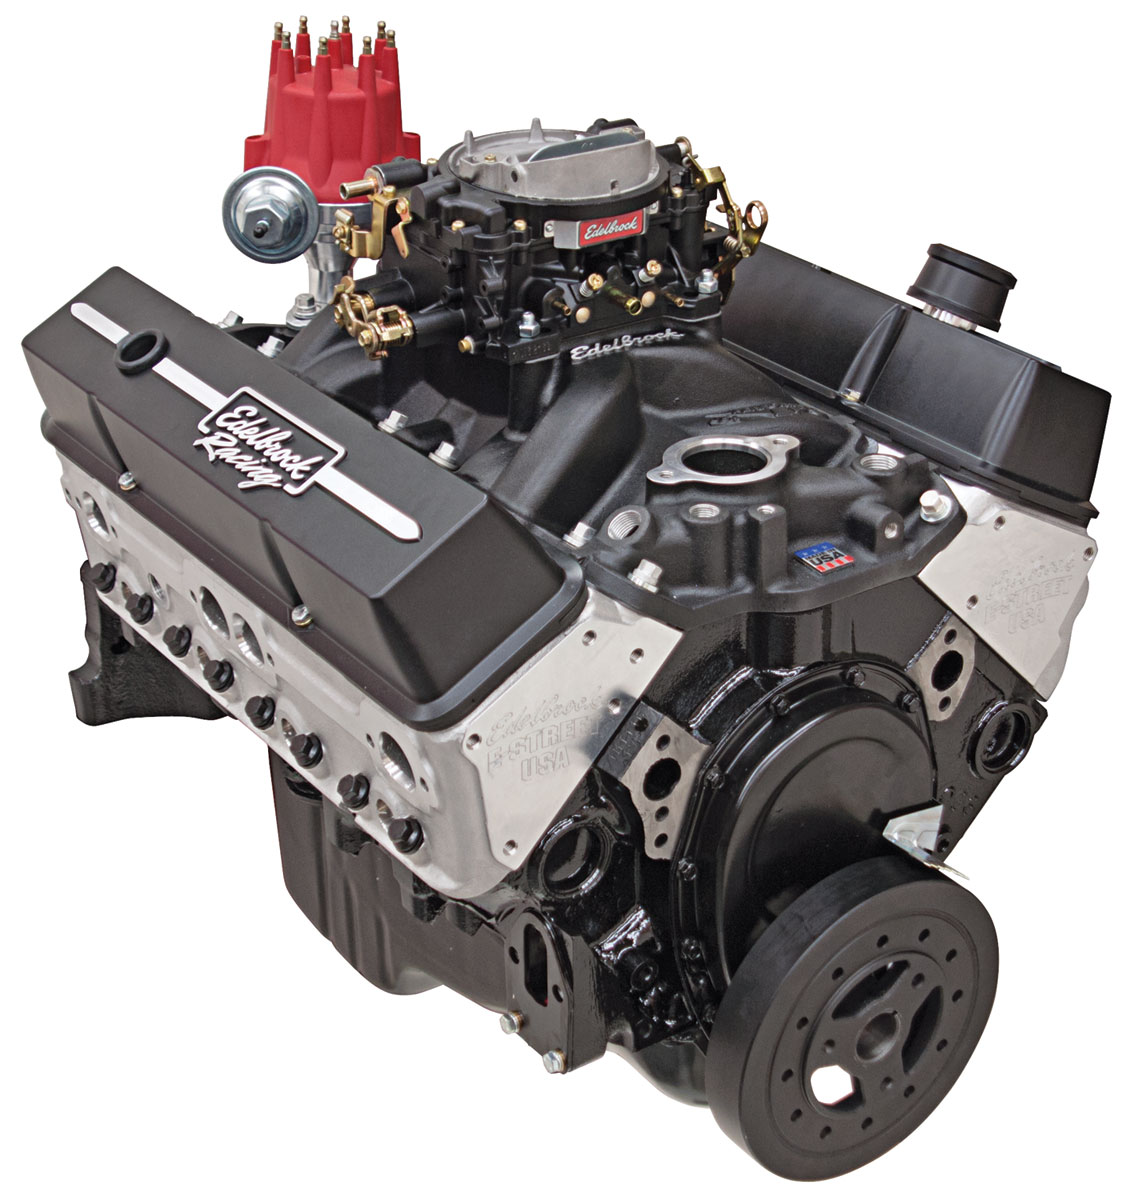 Photo of Crate Engine, Edelbrock E-Street 315 HP, Carbureted black